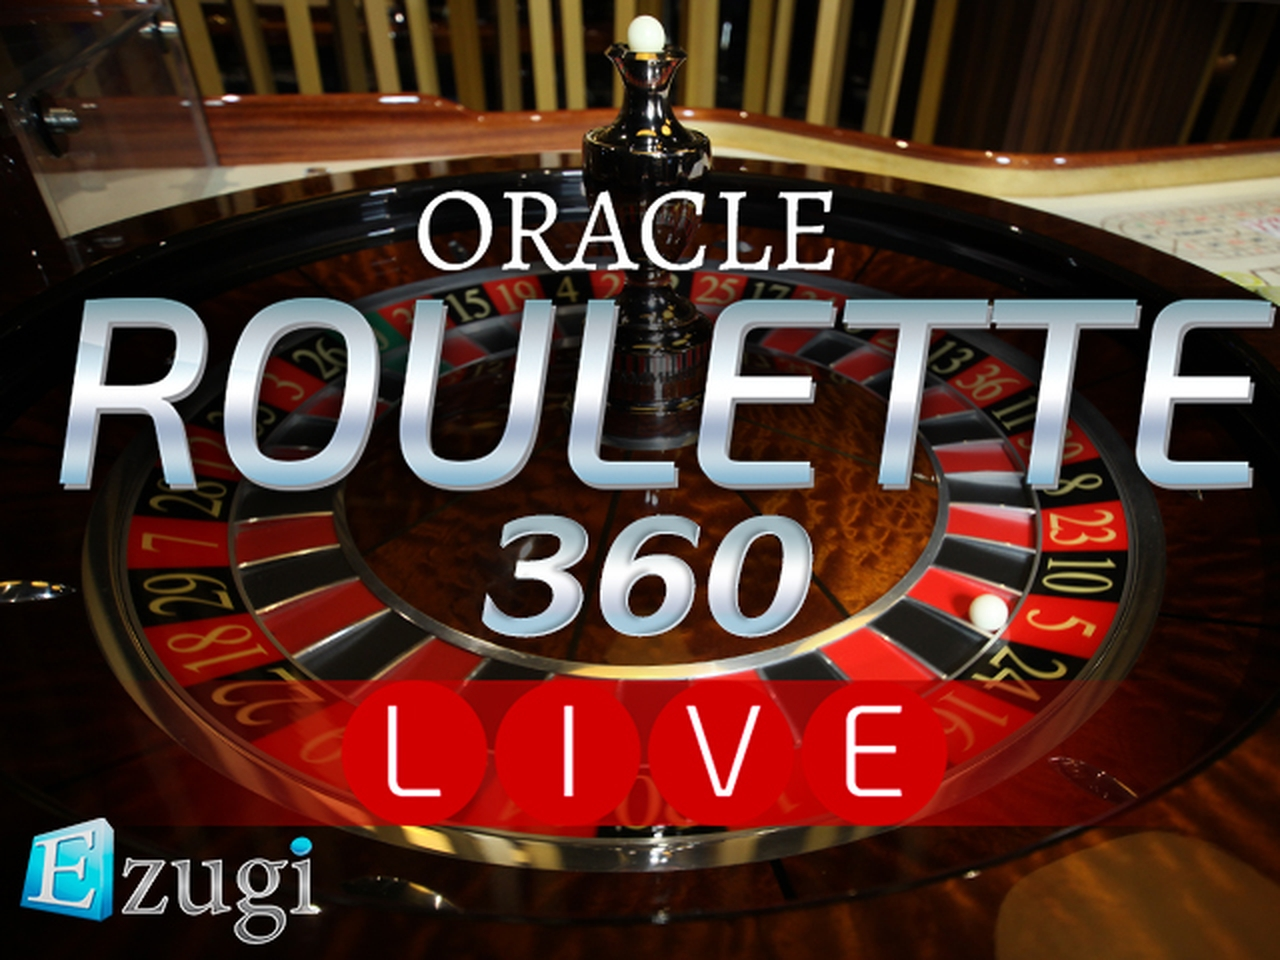 The Roulette Oracle Casino 360 Online Slot Demo Game by Ezugi